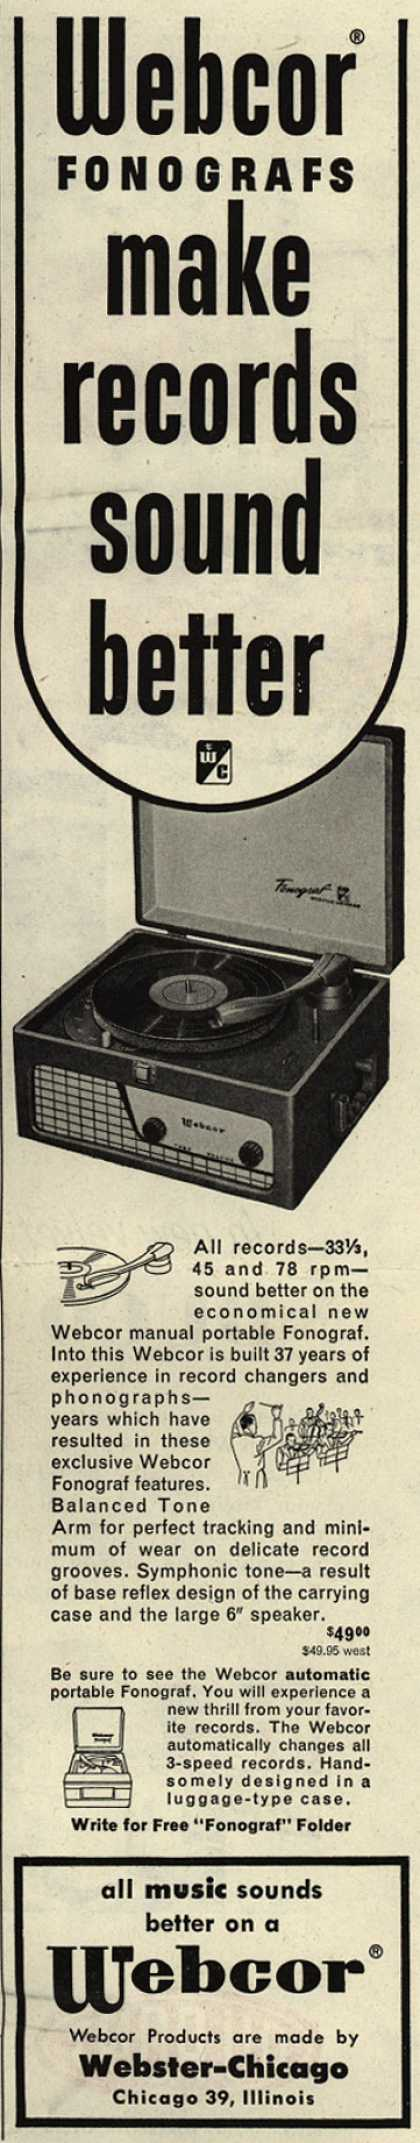 Webster-Chicago Corporation's Fonograf – Webcor Fonografs make records sound better (1952)